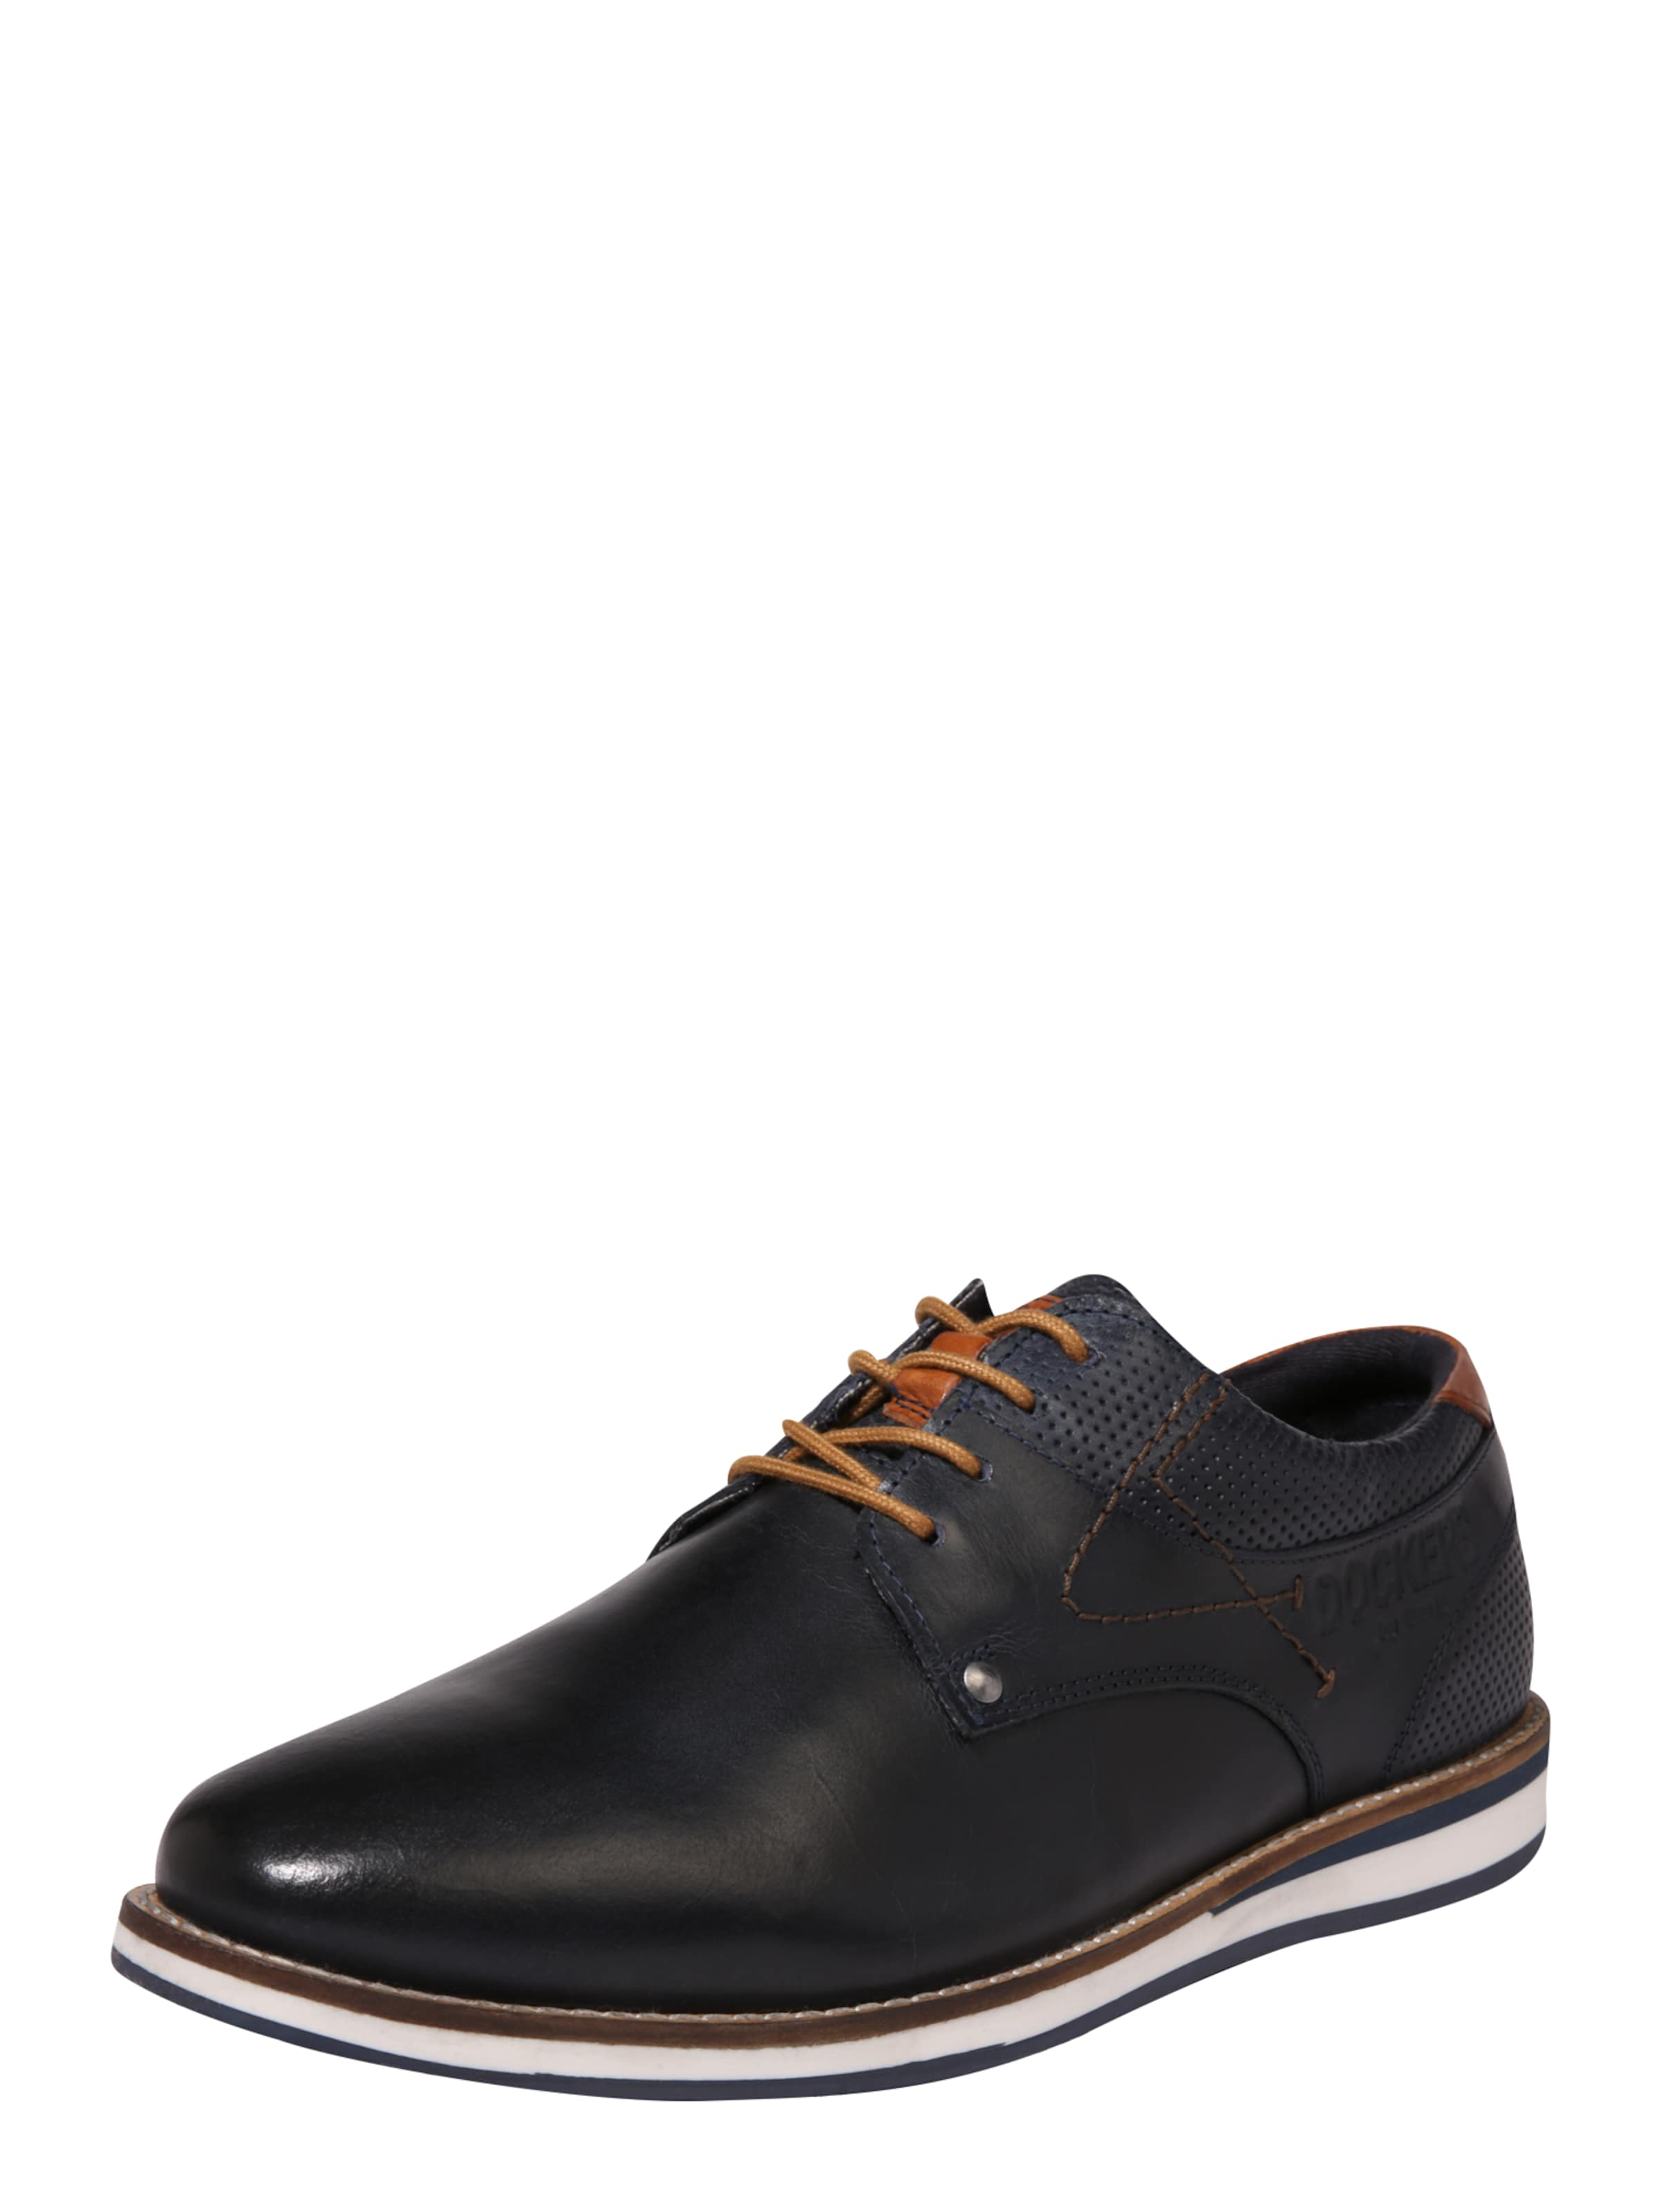 By Dockers Gerli NavyCognac In Halbschuhe kn0X8wNPO